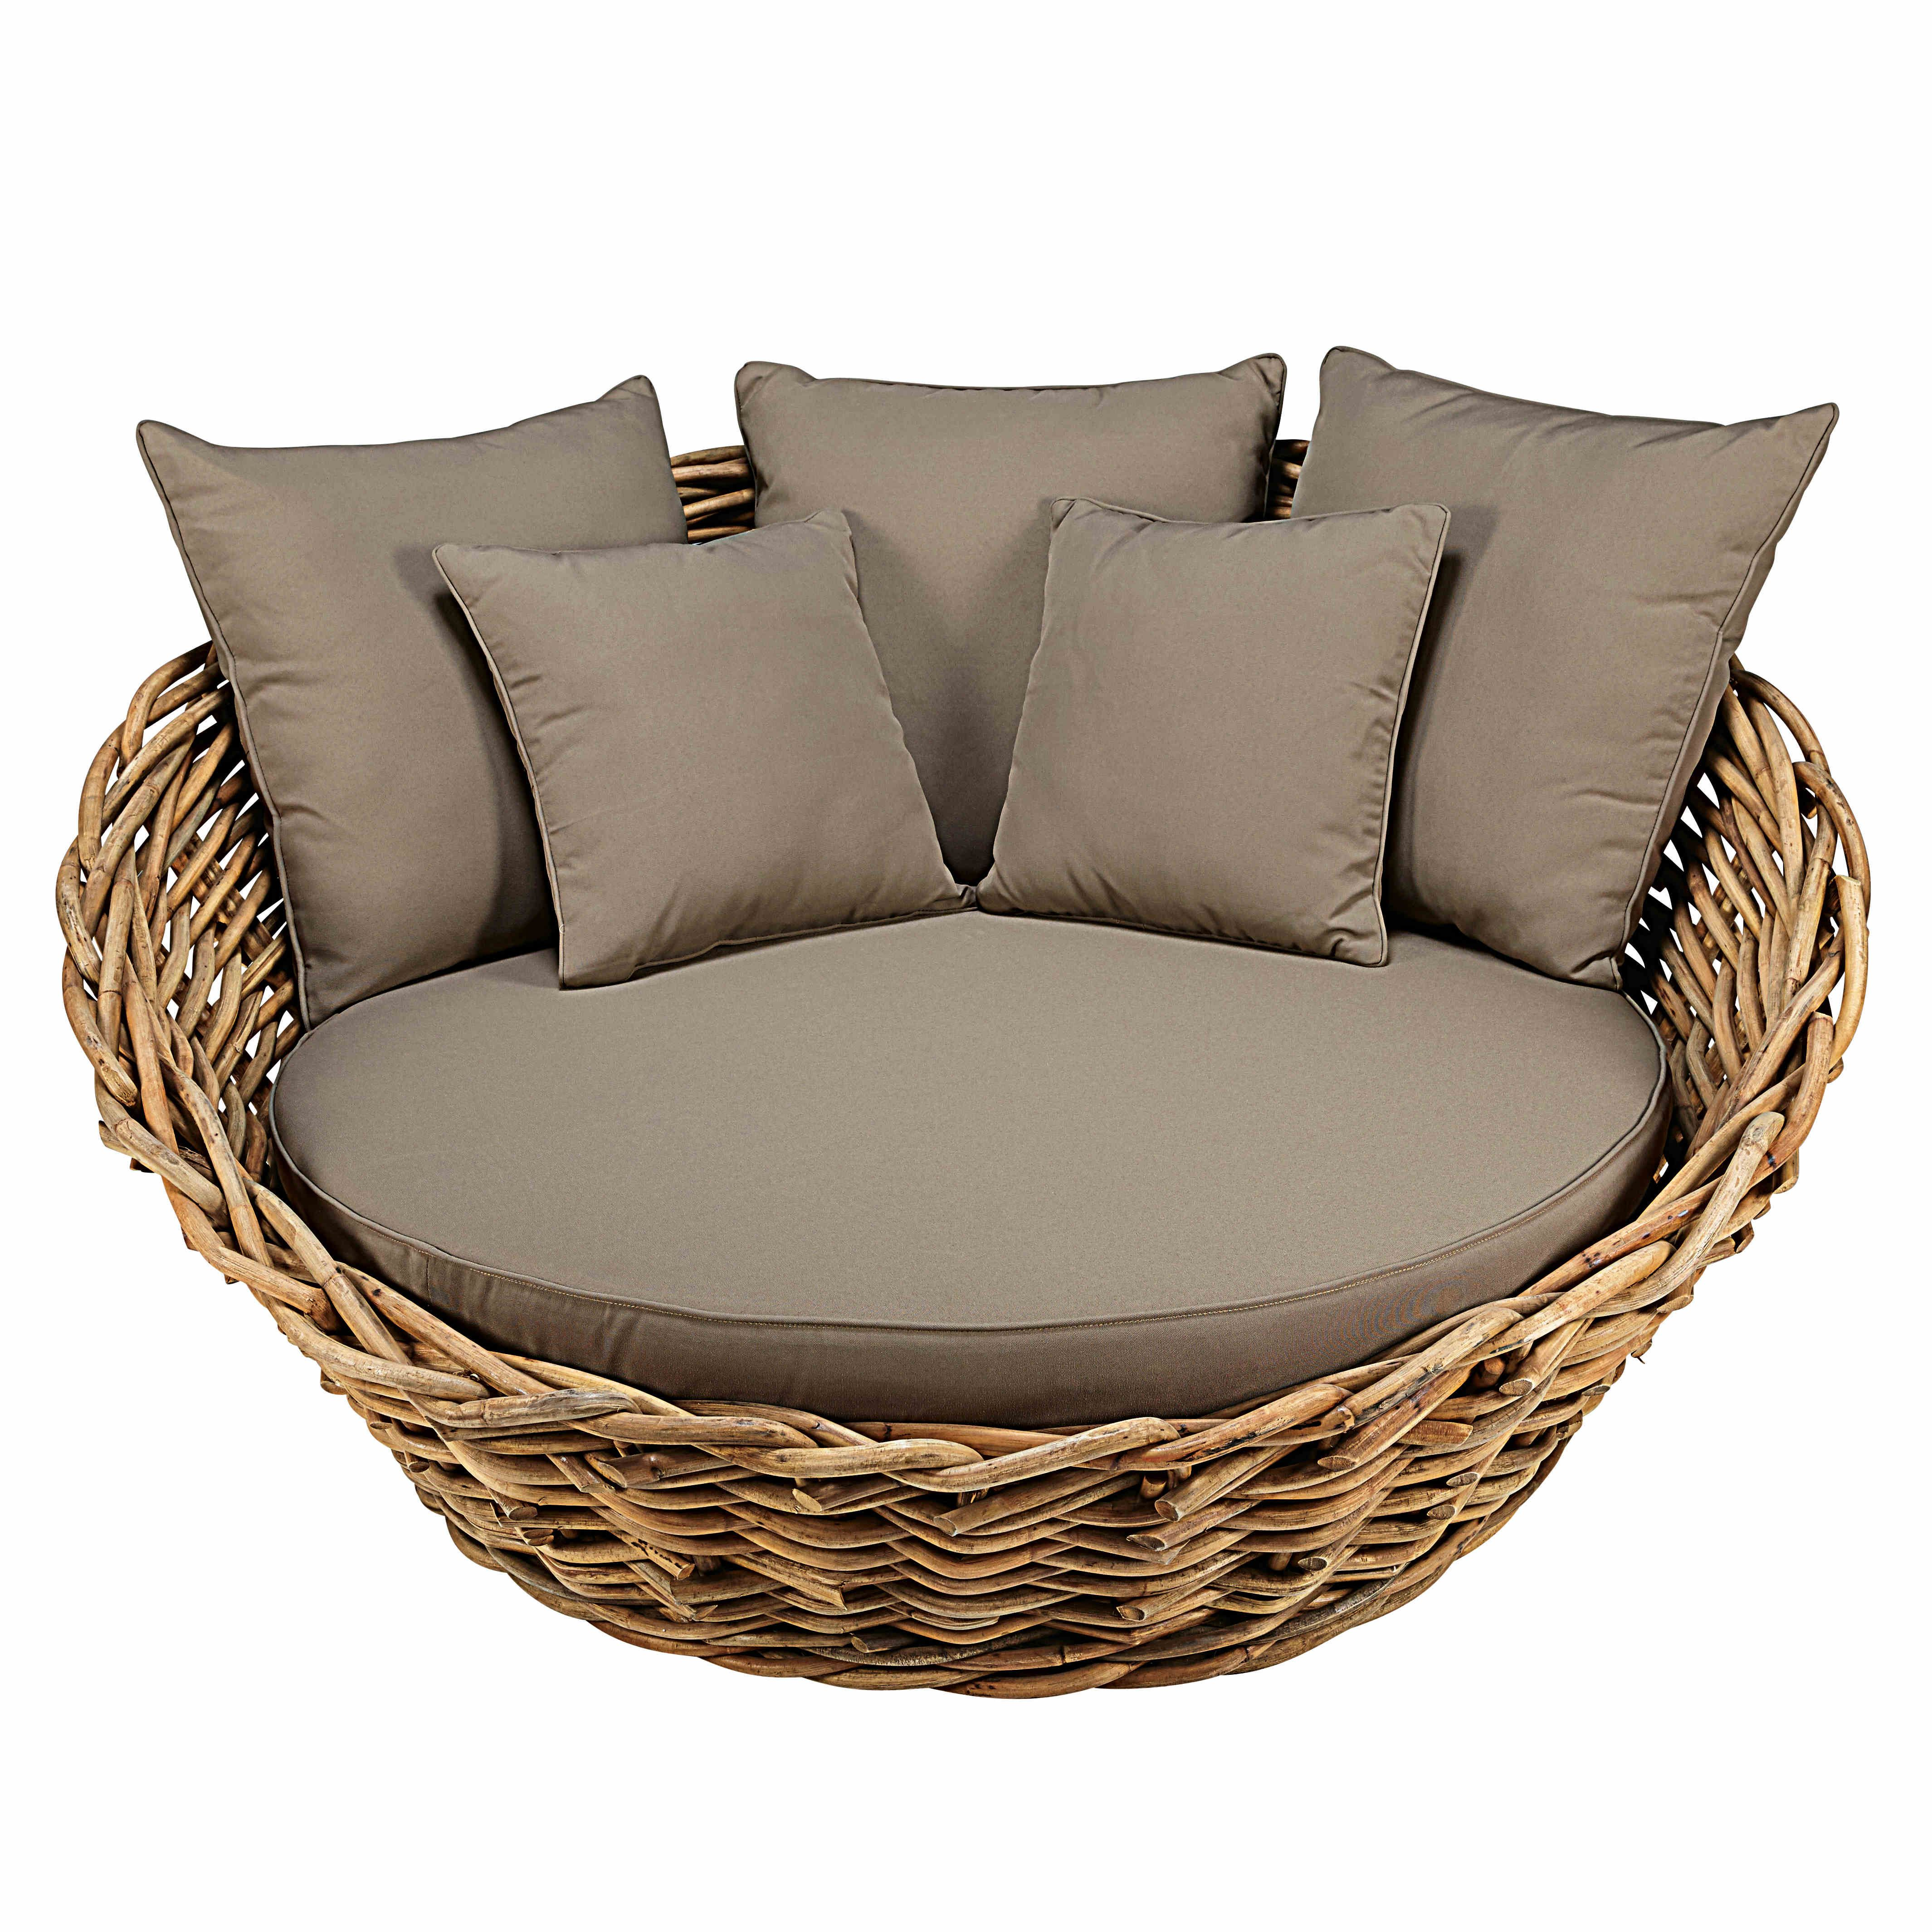 canap rond de jardin en rotin et coussins taupe gartensofa loungem bel garten und rattan. Black Bedroom Furniture Sets. Home Design Ideas